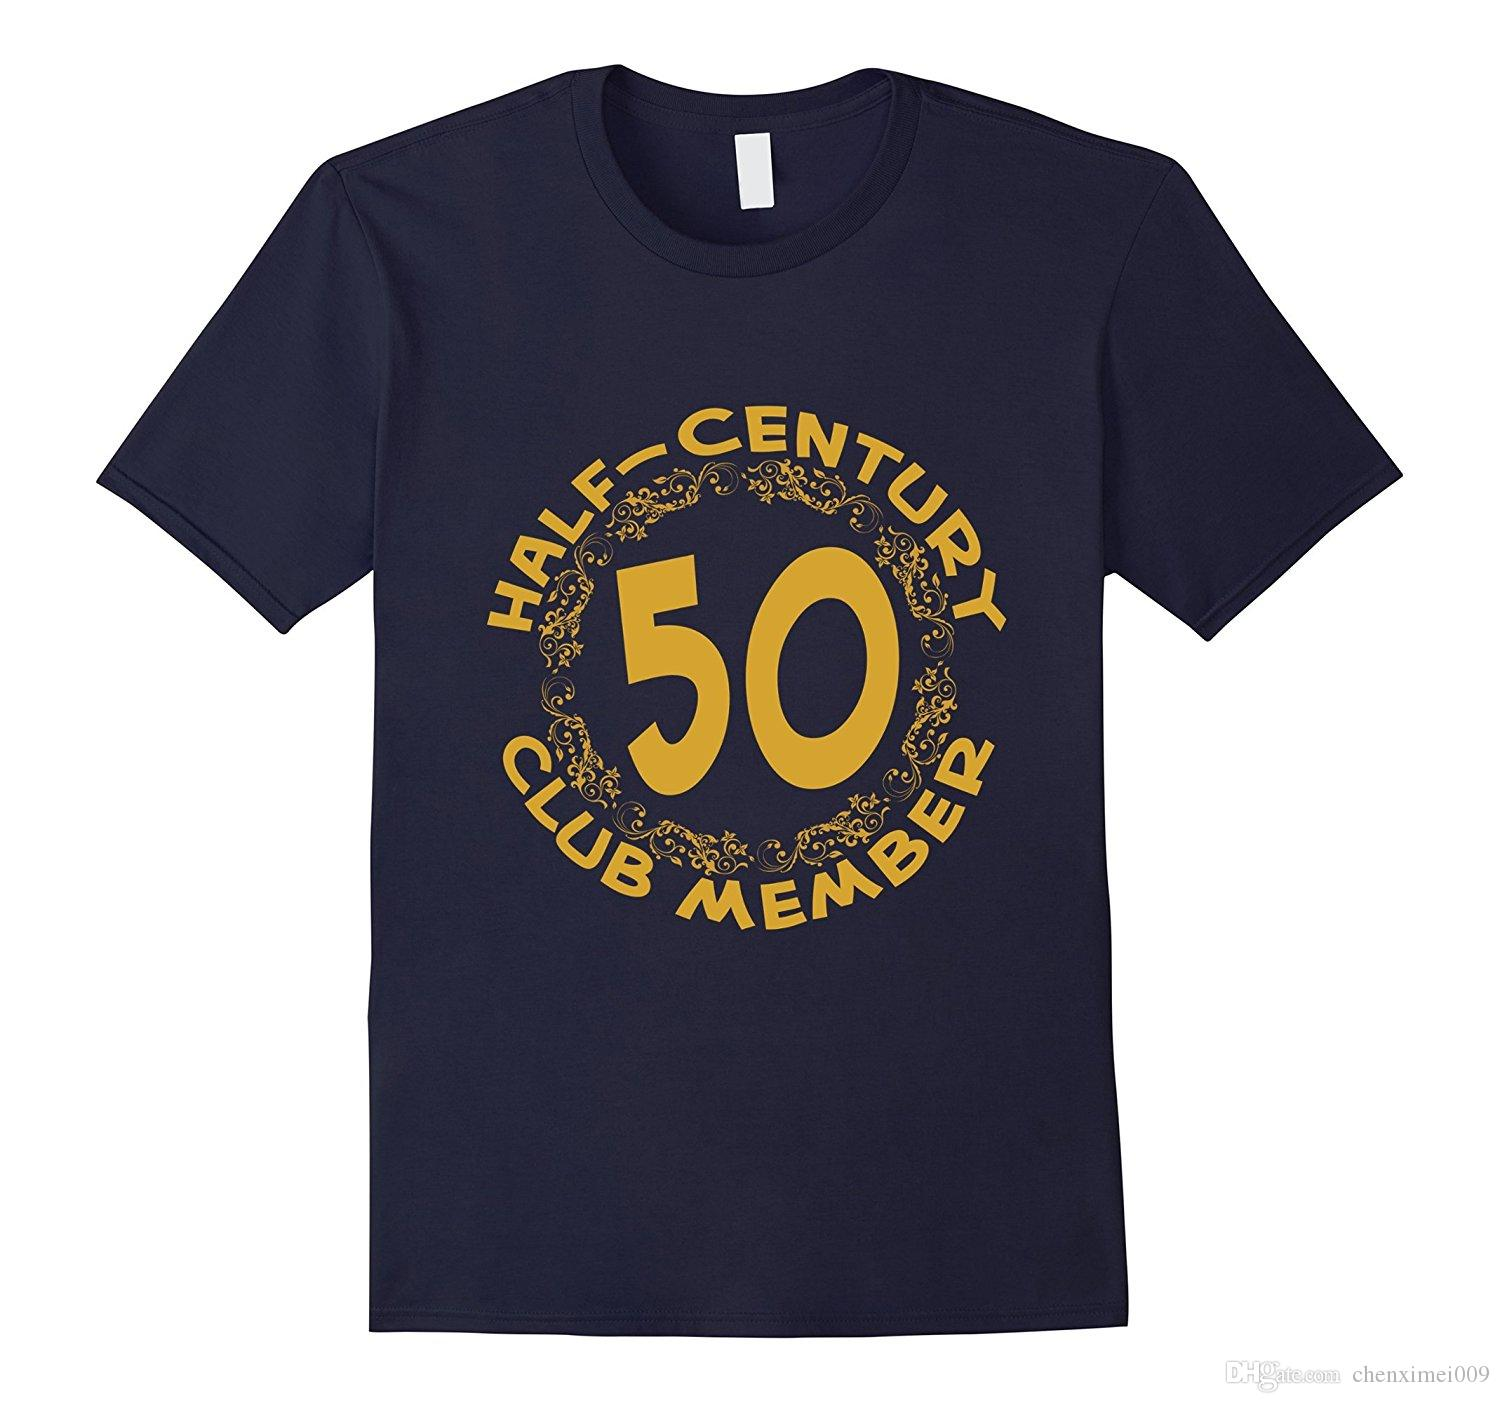 50th Birthday Party Anniversary T Shirt Half Century Club Shirts Design Designer From Chenximei009 1421